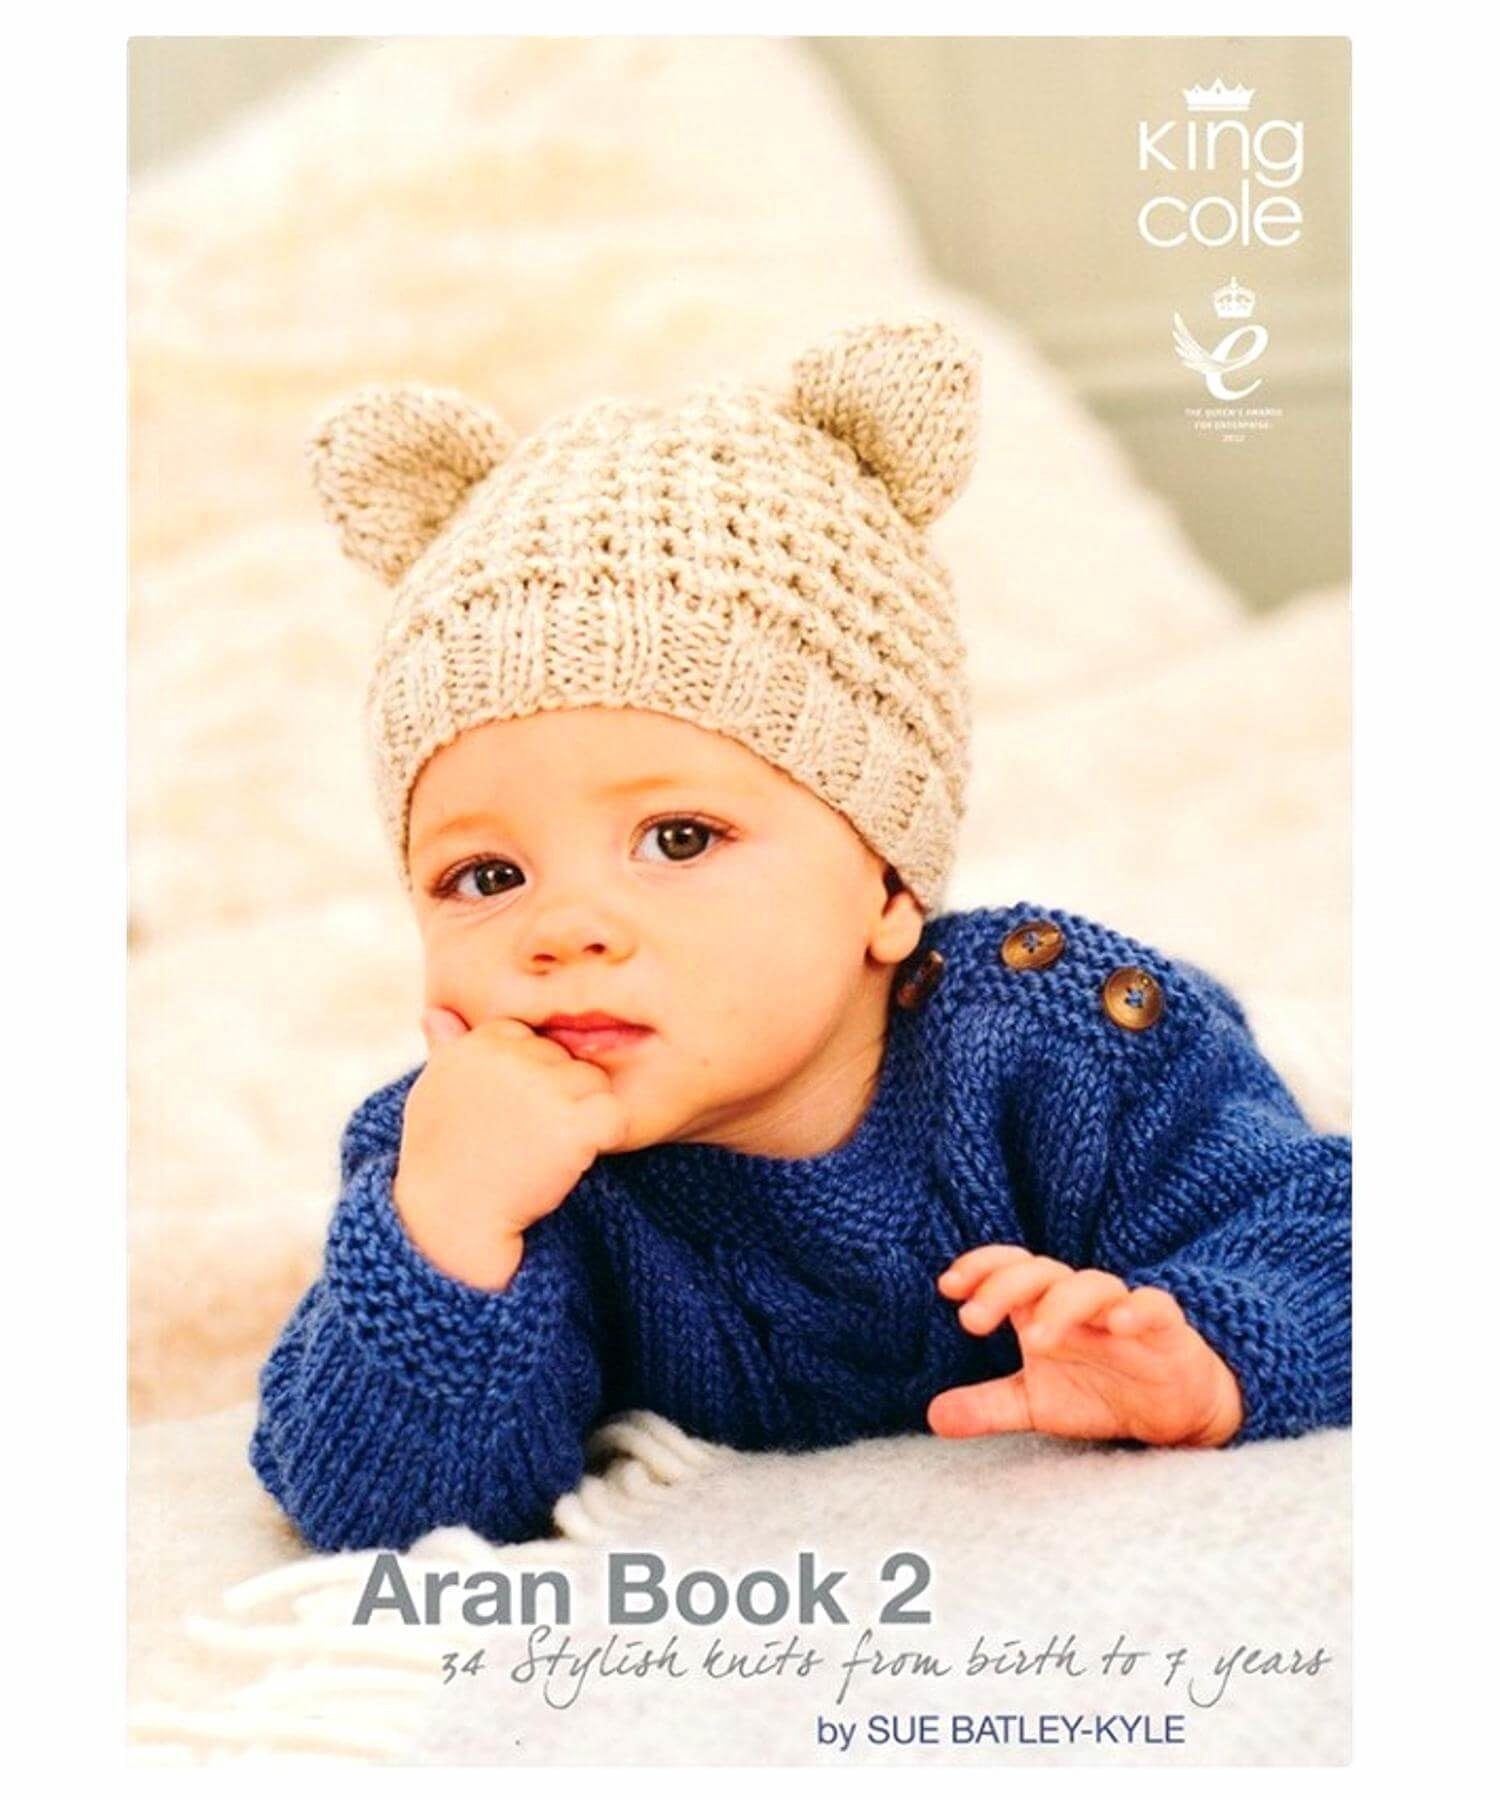 King Cole Aran Book 2 - [Springwools] - Knitting - Irish Gifts